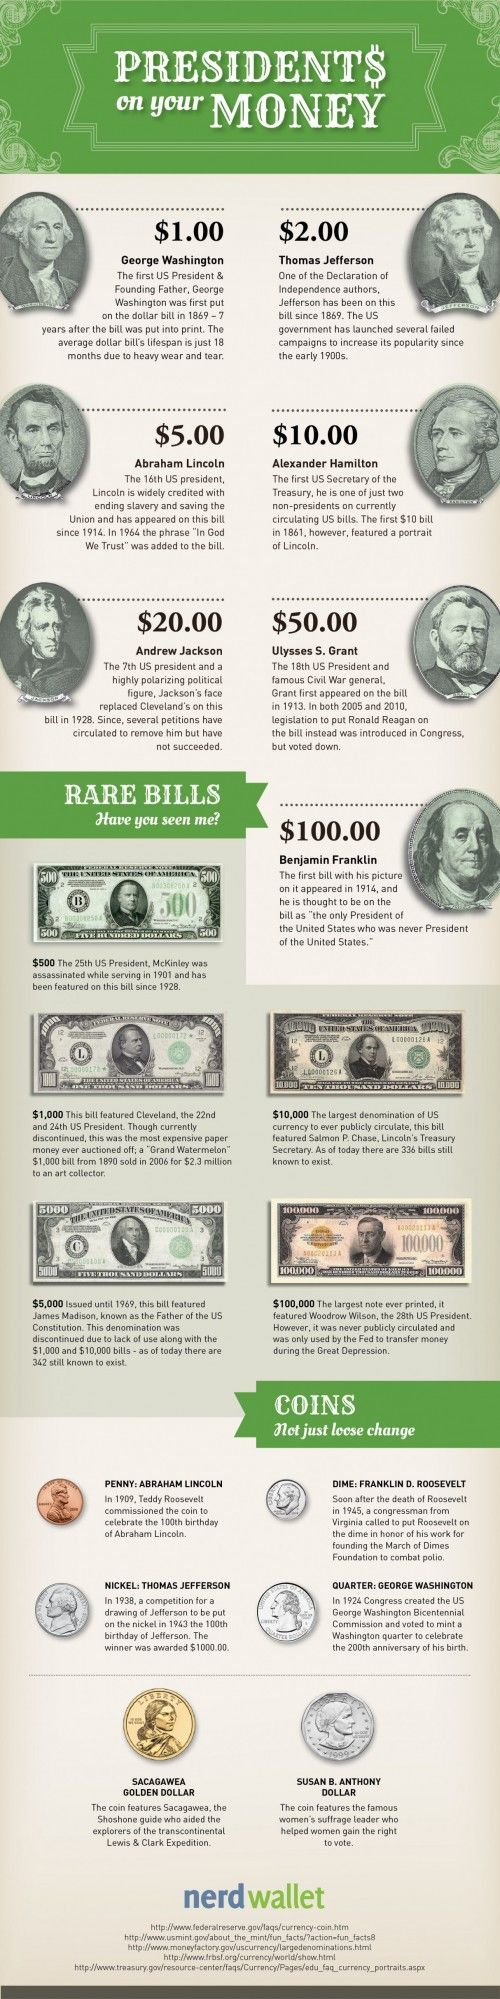 An infographic looking at the various presidents on US money, whether that be notes or coinage. It's not all presidents though with Sacagawea and Susan B Anthony also featuring on the golden dollar and the dollar respectively. In the UK, notes tend to praise innovators in a variety of forms. From Visual.ly.